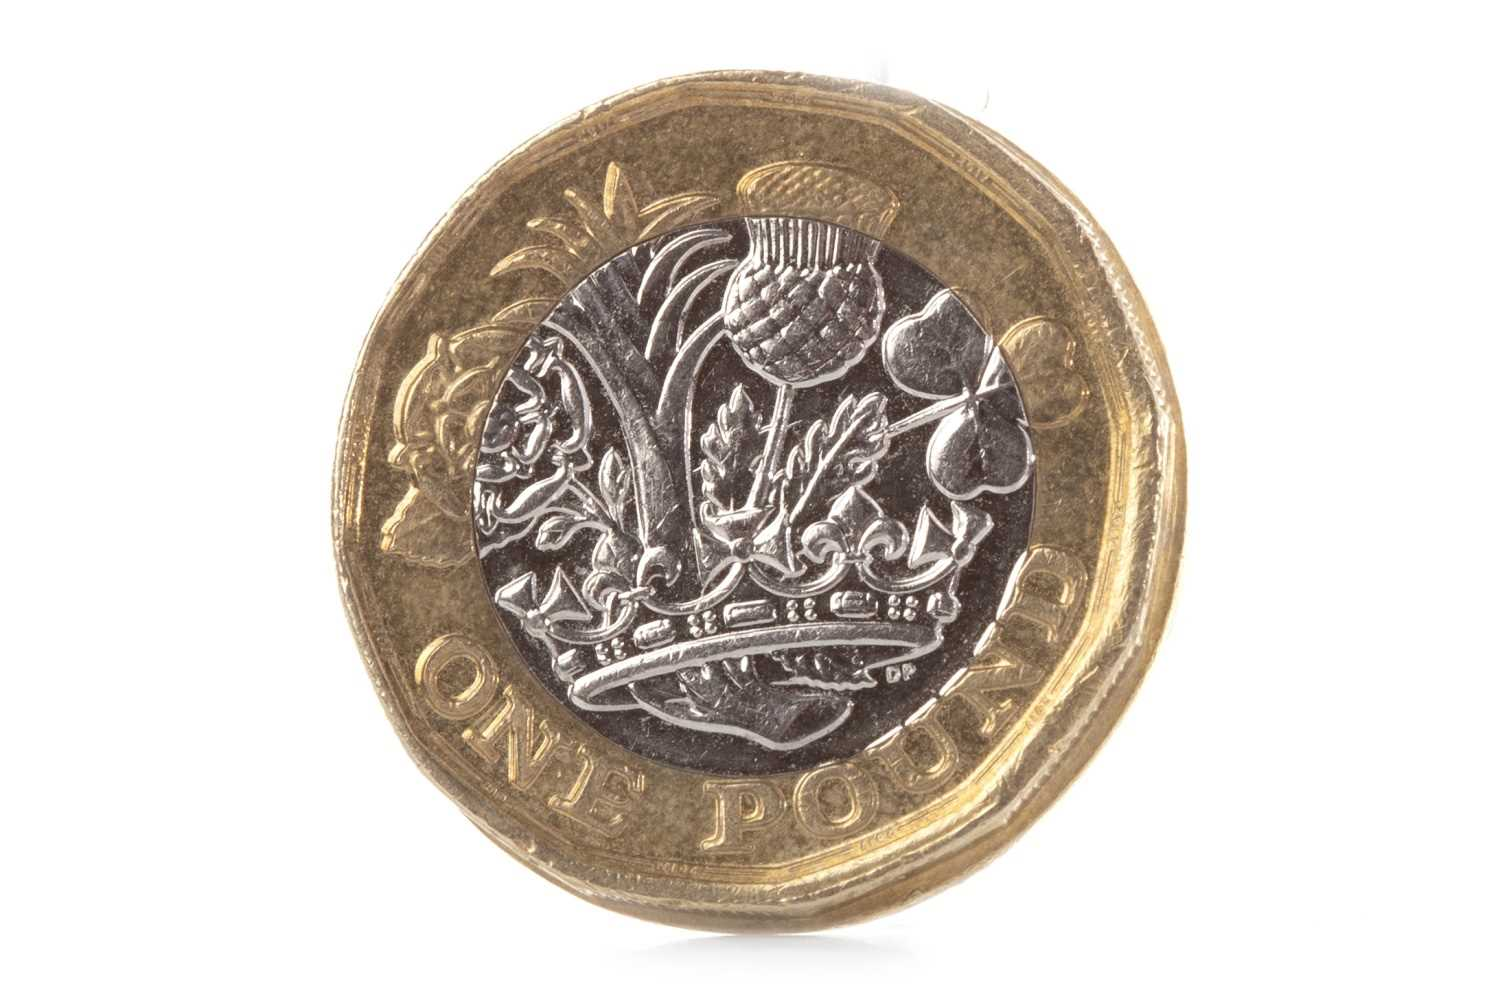 Lot 600-A MISTRIKE £1 ONE POUND COIN DATED 2017